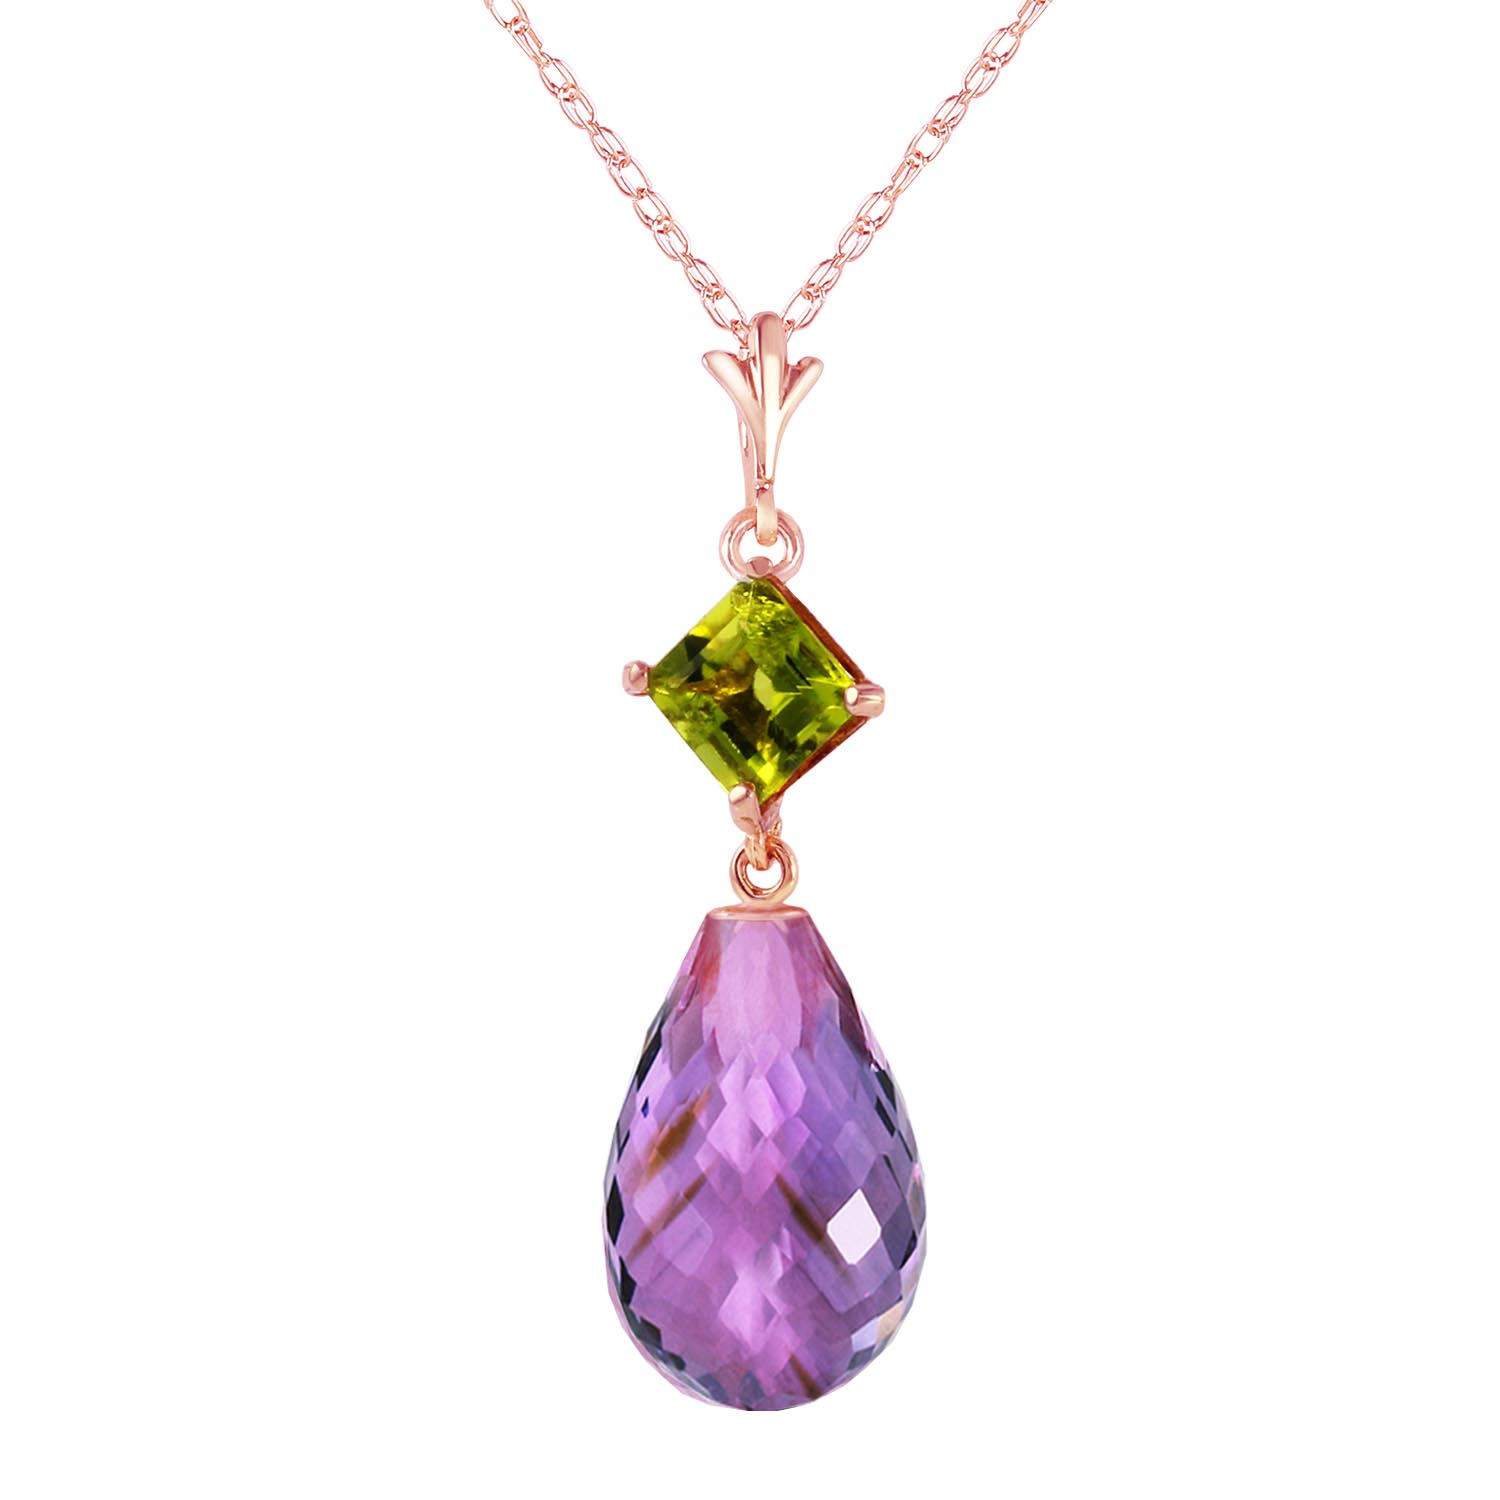 Bargain Amethyst and Peridot Pendant Necklace 5.5ctw in 9ct Rose Gold Stockists